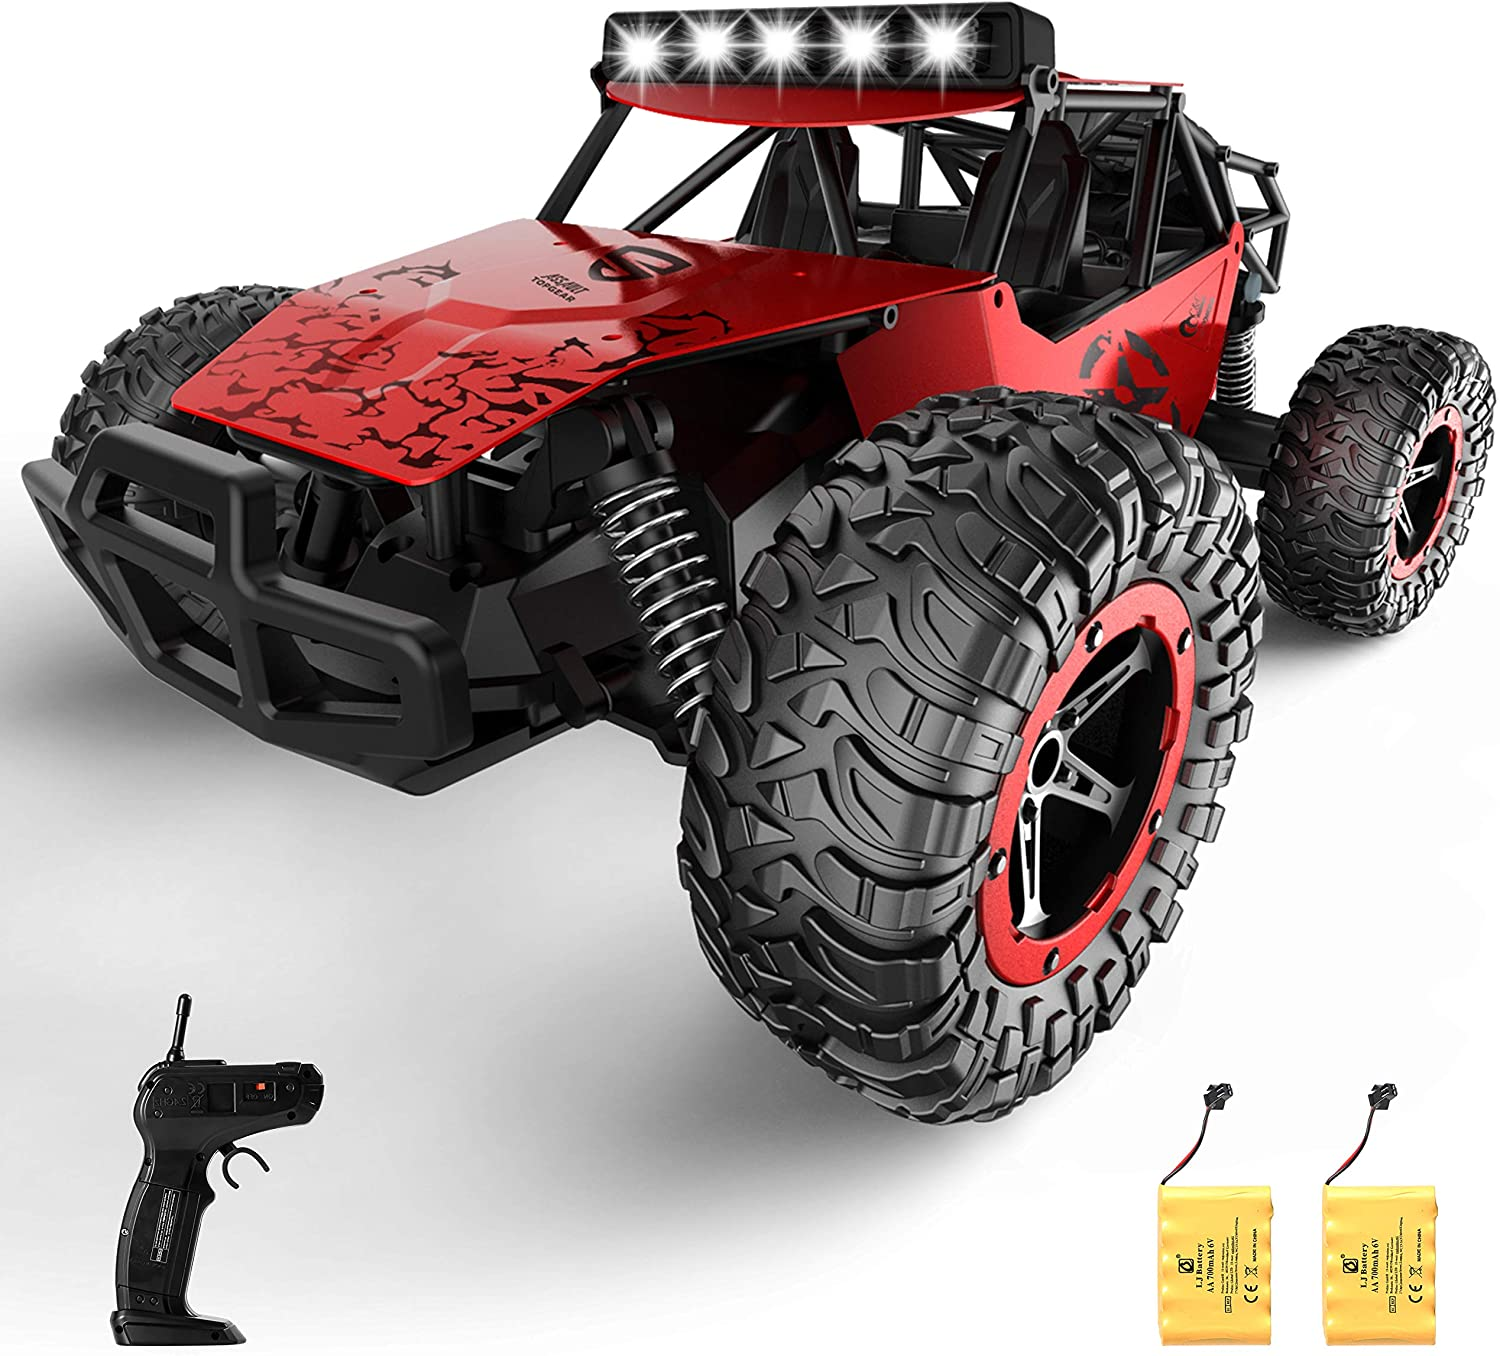 SZJJX 1:14 Scale Fast All Terrain Off-Road RC Car $19.49 Coupon